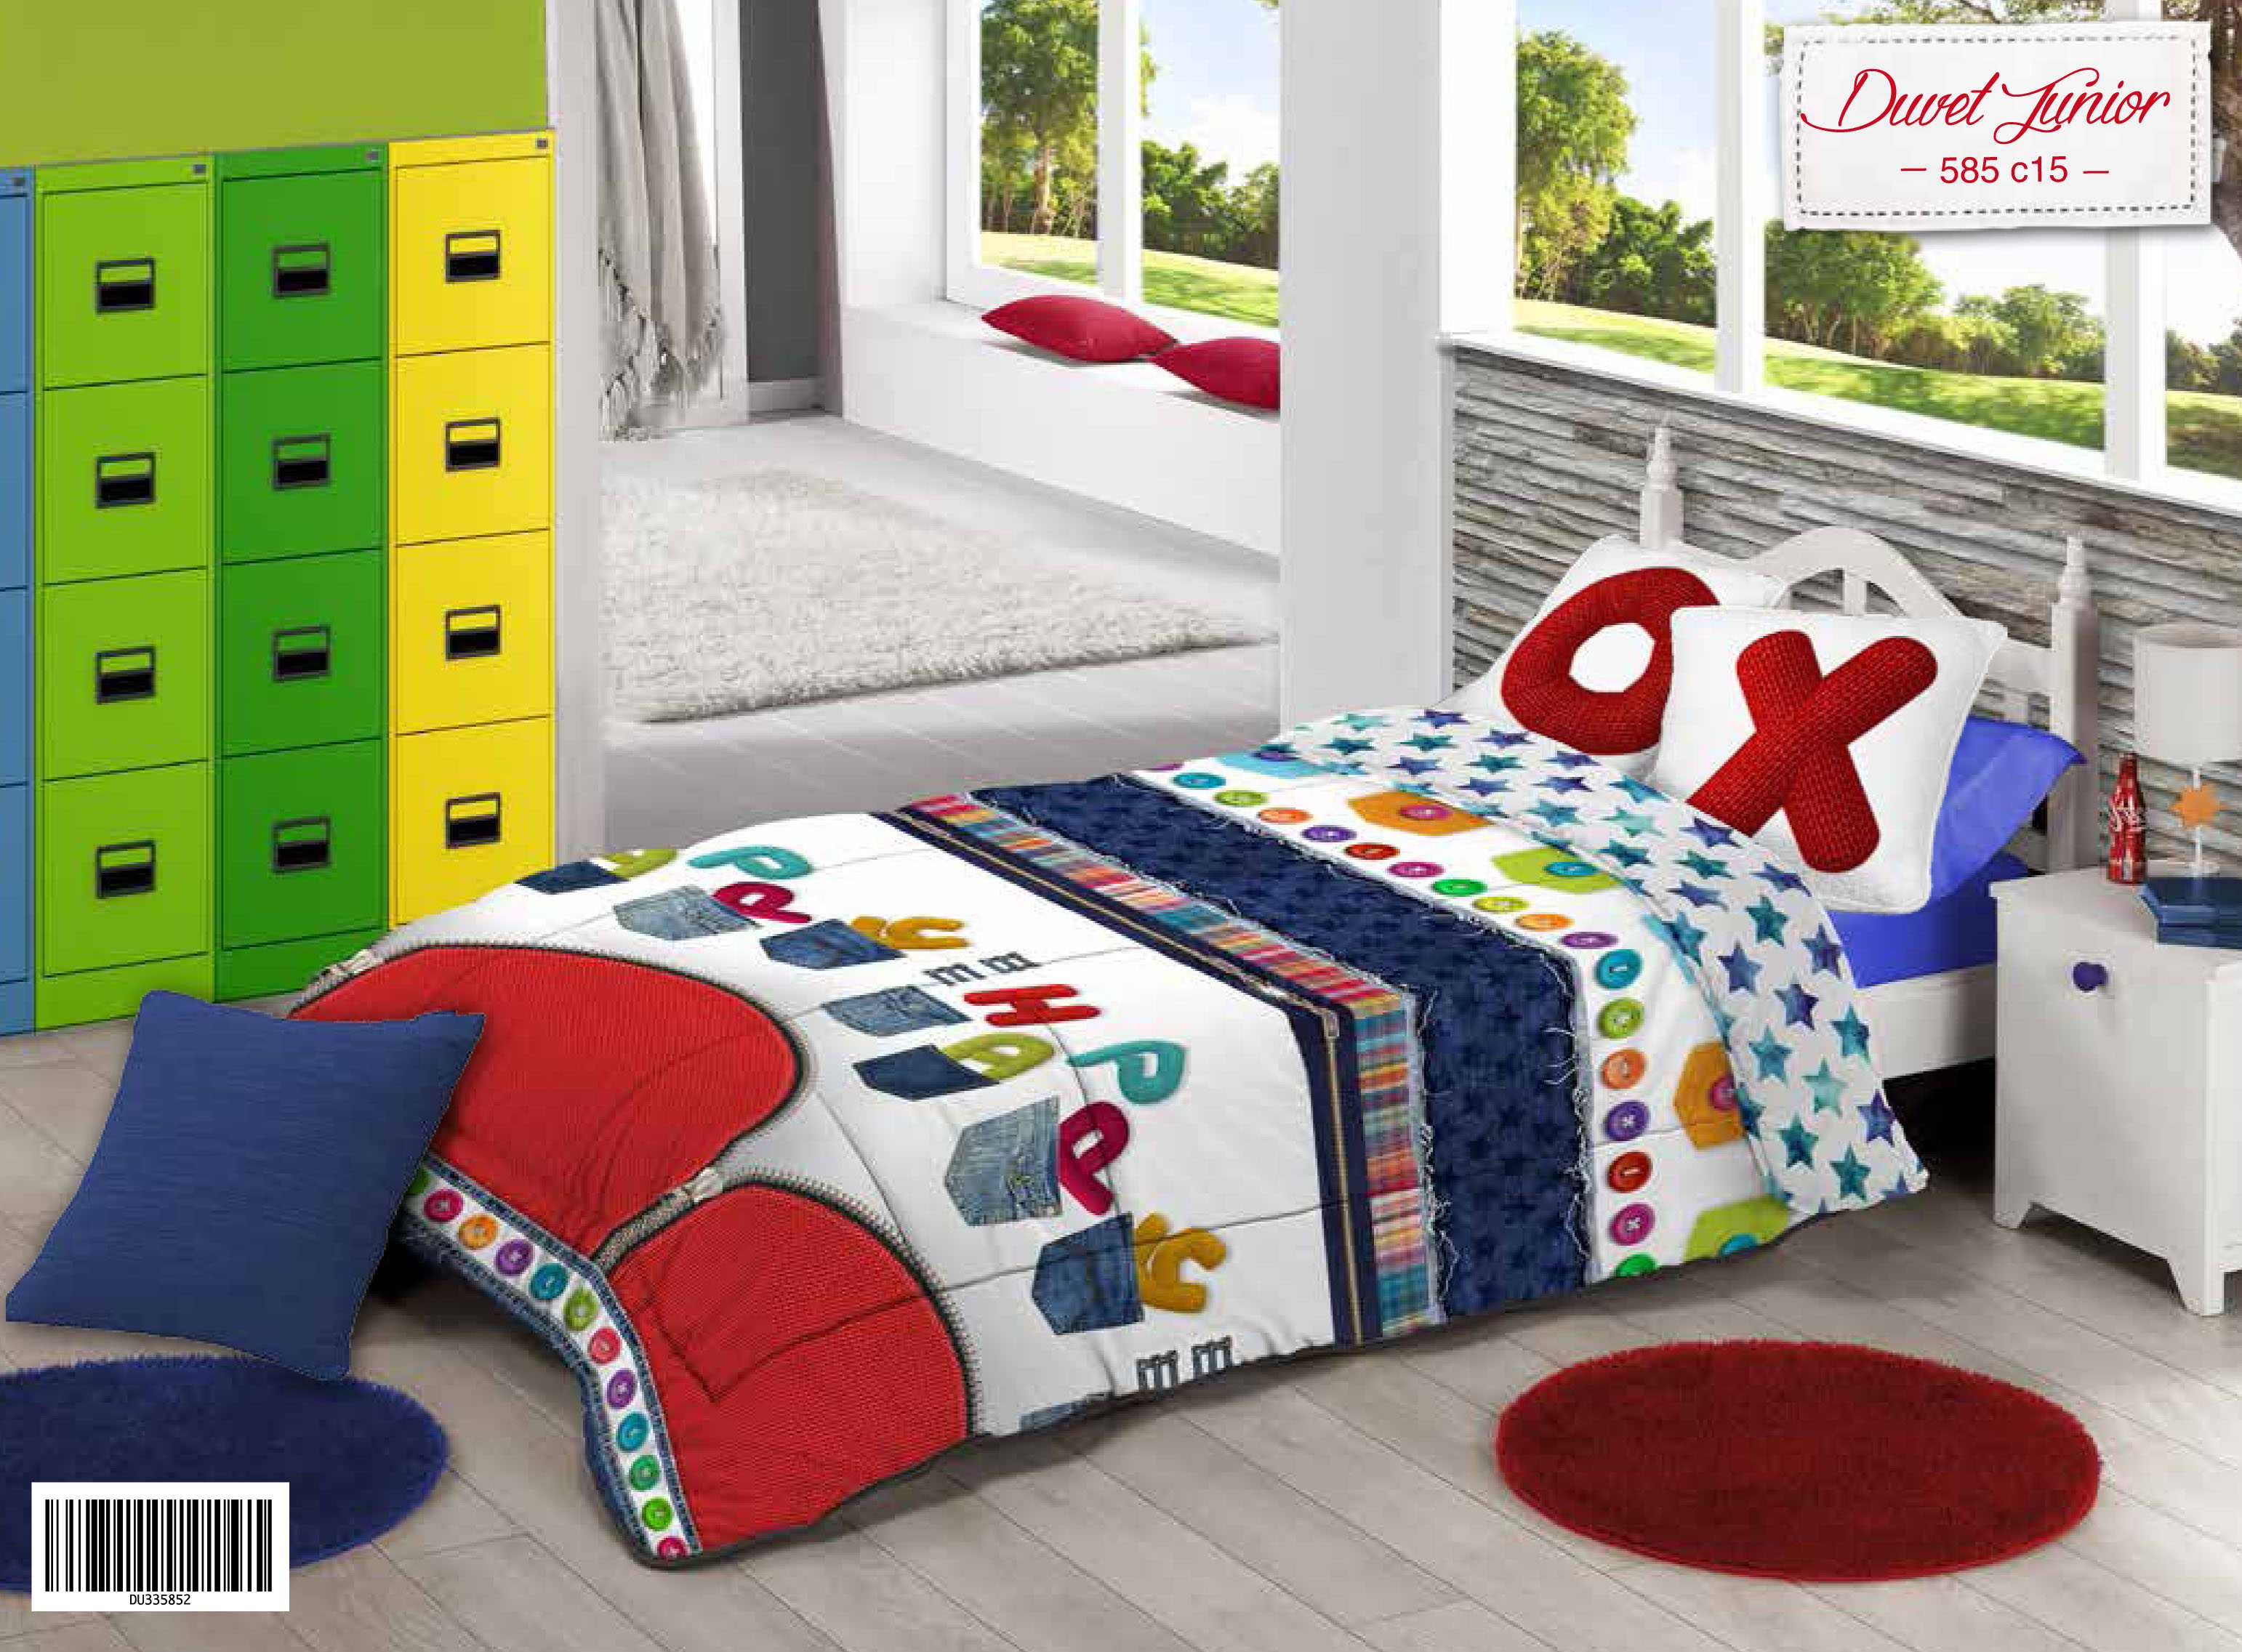 DUVET JUNIOR 585